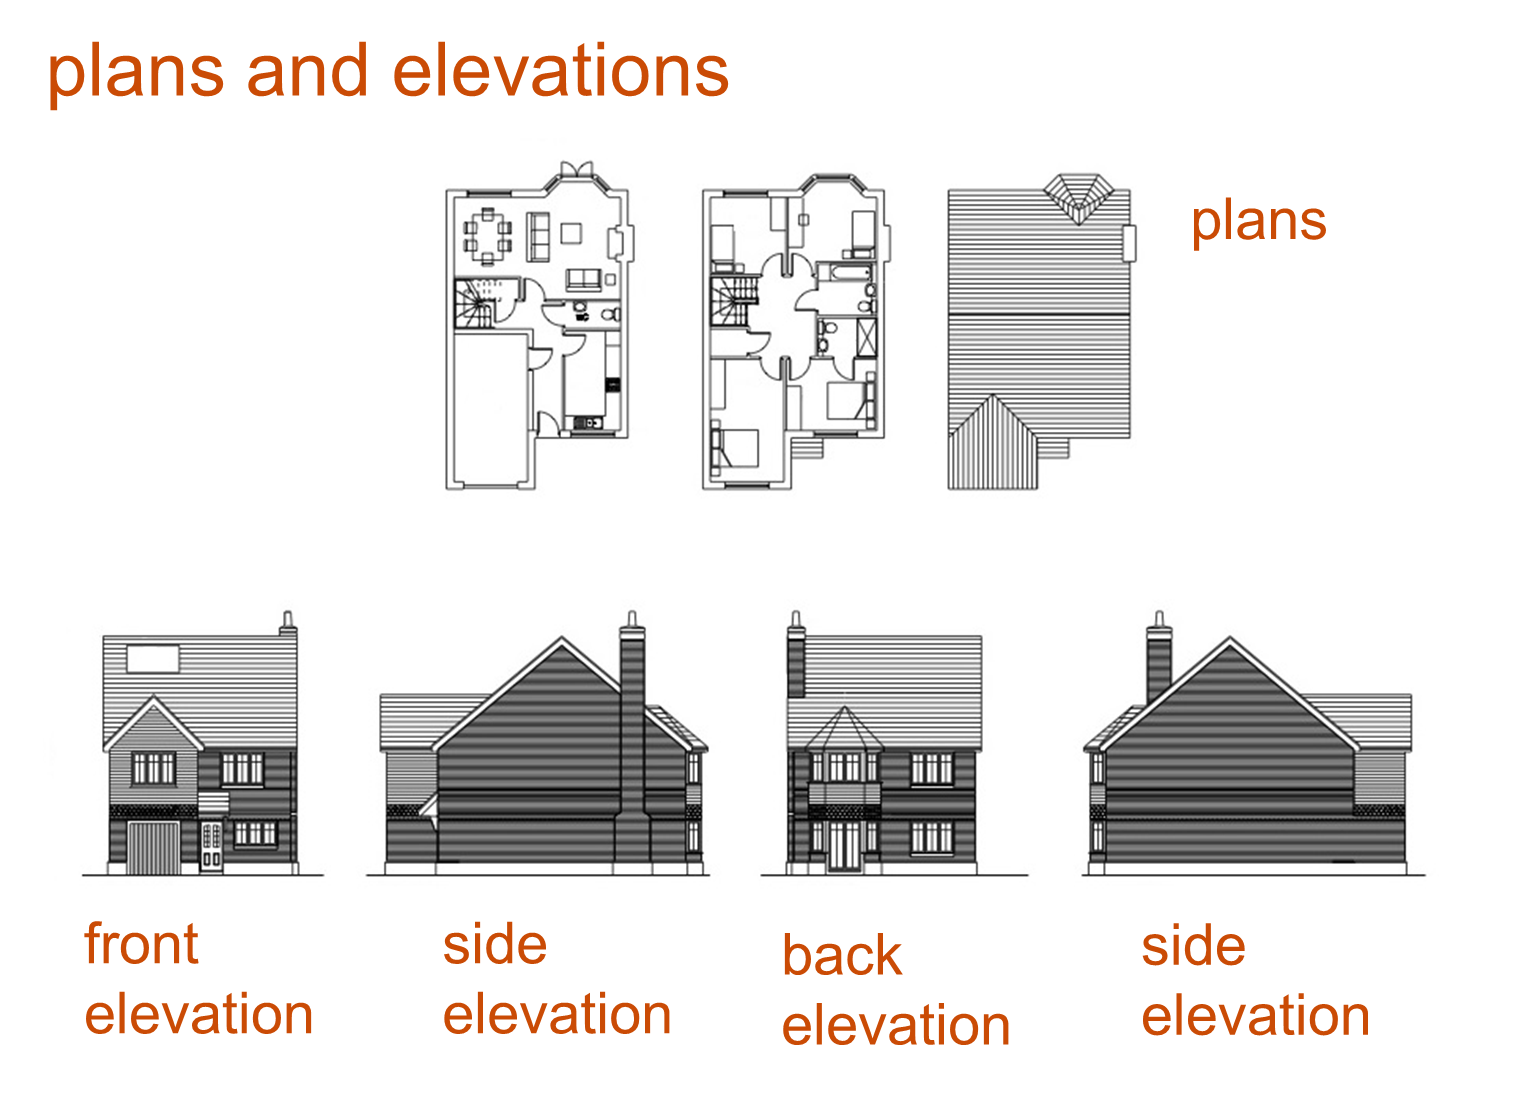 Plan And Elevation Maths : Median don steward mathematics teaching plans and elevations